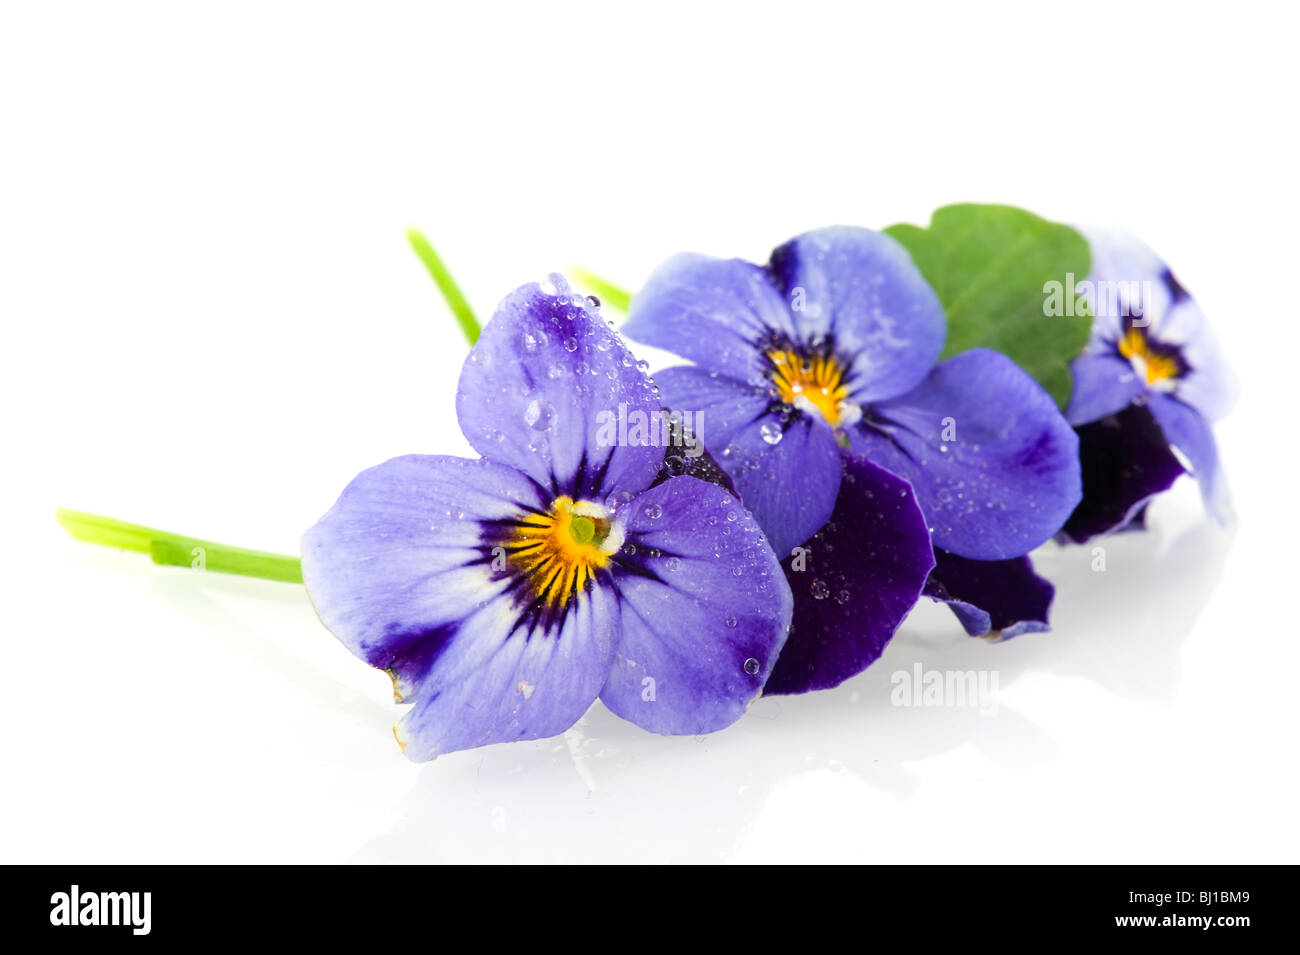 Blue Pansies isolated over white - Stock Image